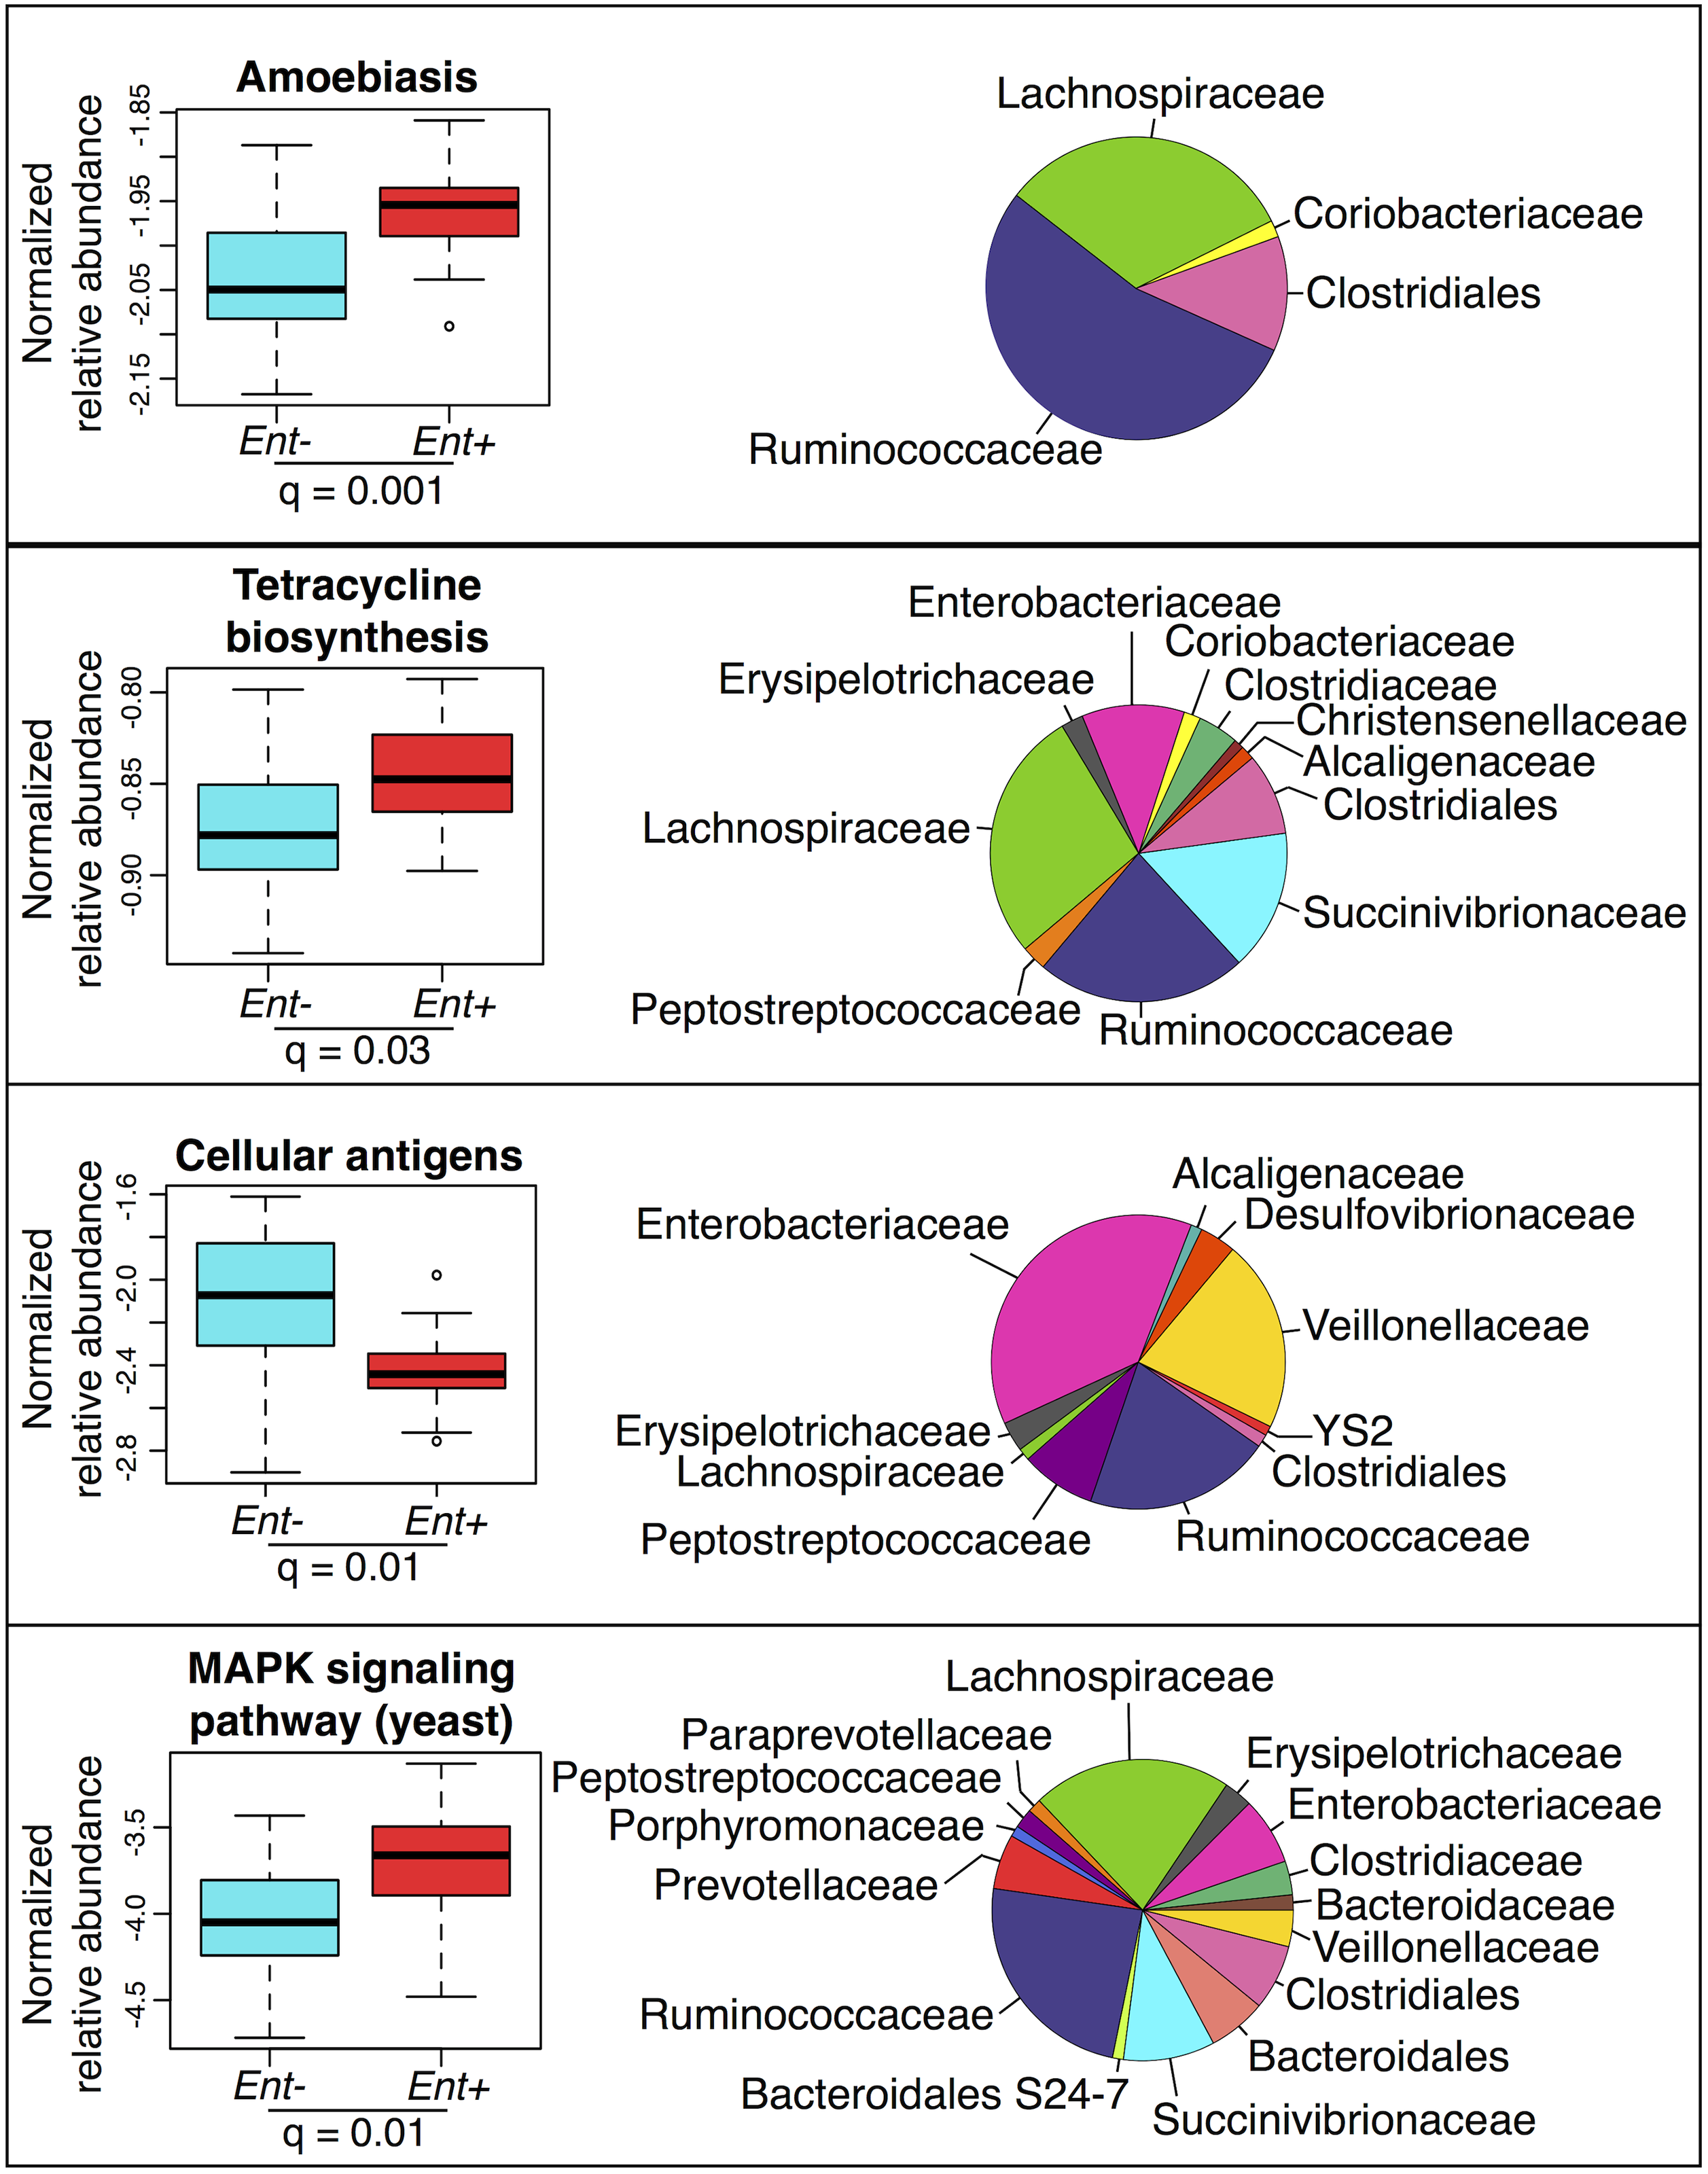 Normalized relative abundance of KEGG metabolic pathways significantly associated with <i>Entamoeba</i> status in an ANOVA (q < 0.05 using the most abundant; ≤ 0.4% in at least one group) (left panel) and the relative contributions of each taxon for each pathway (right panel).